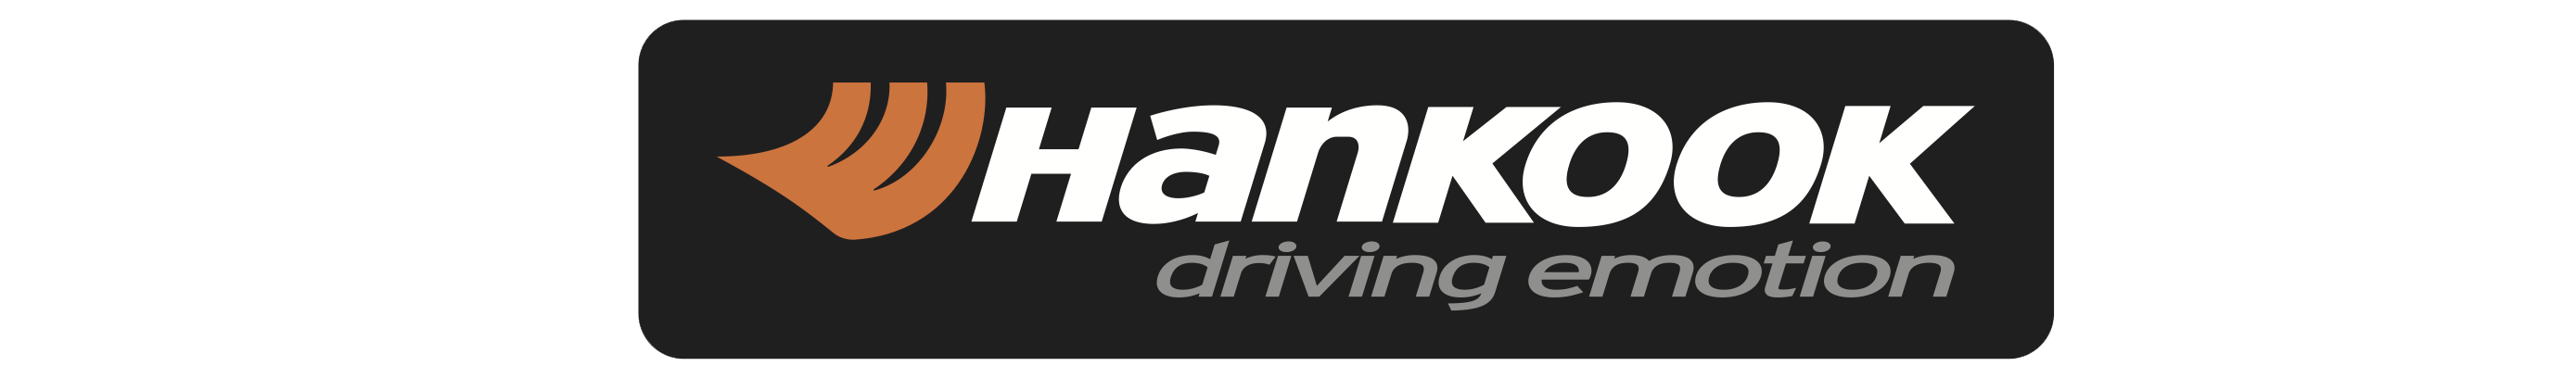 https://www.ustires.org/sites/default/files/hankook_logo_color.png